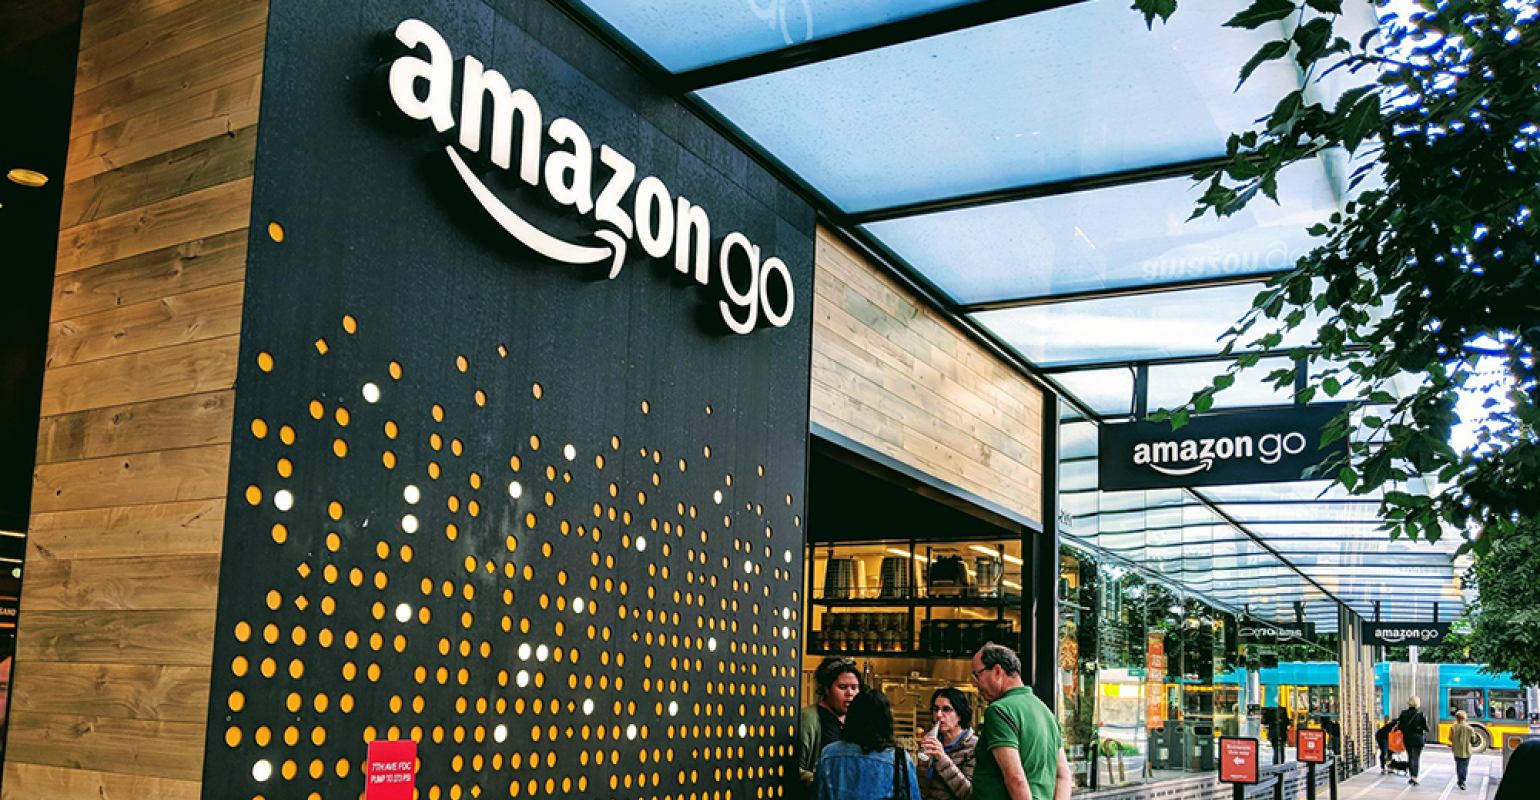 8b1978ce390a0 Broader brick-and-mortar rollout to come from Amazon | Supermarket News